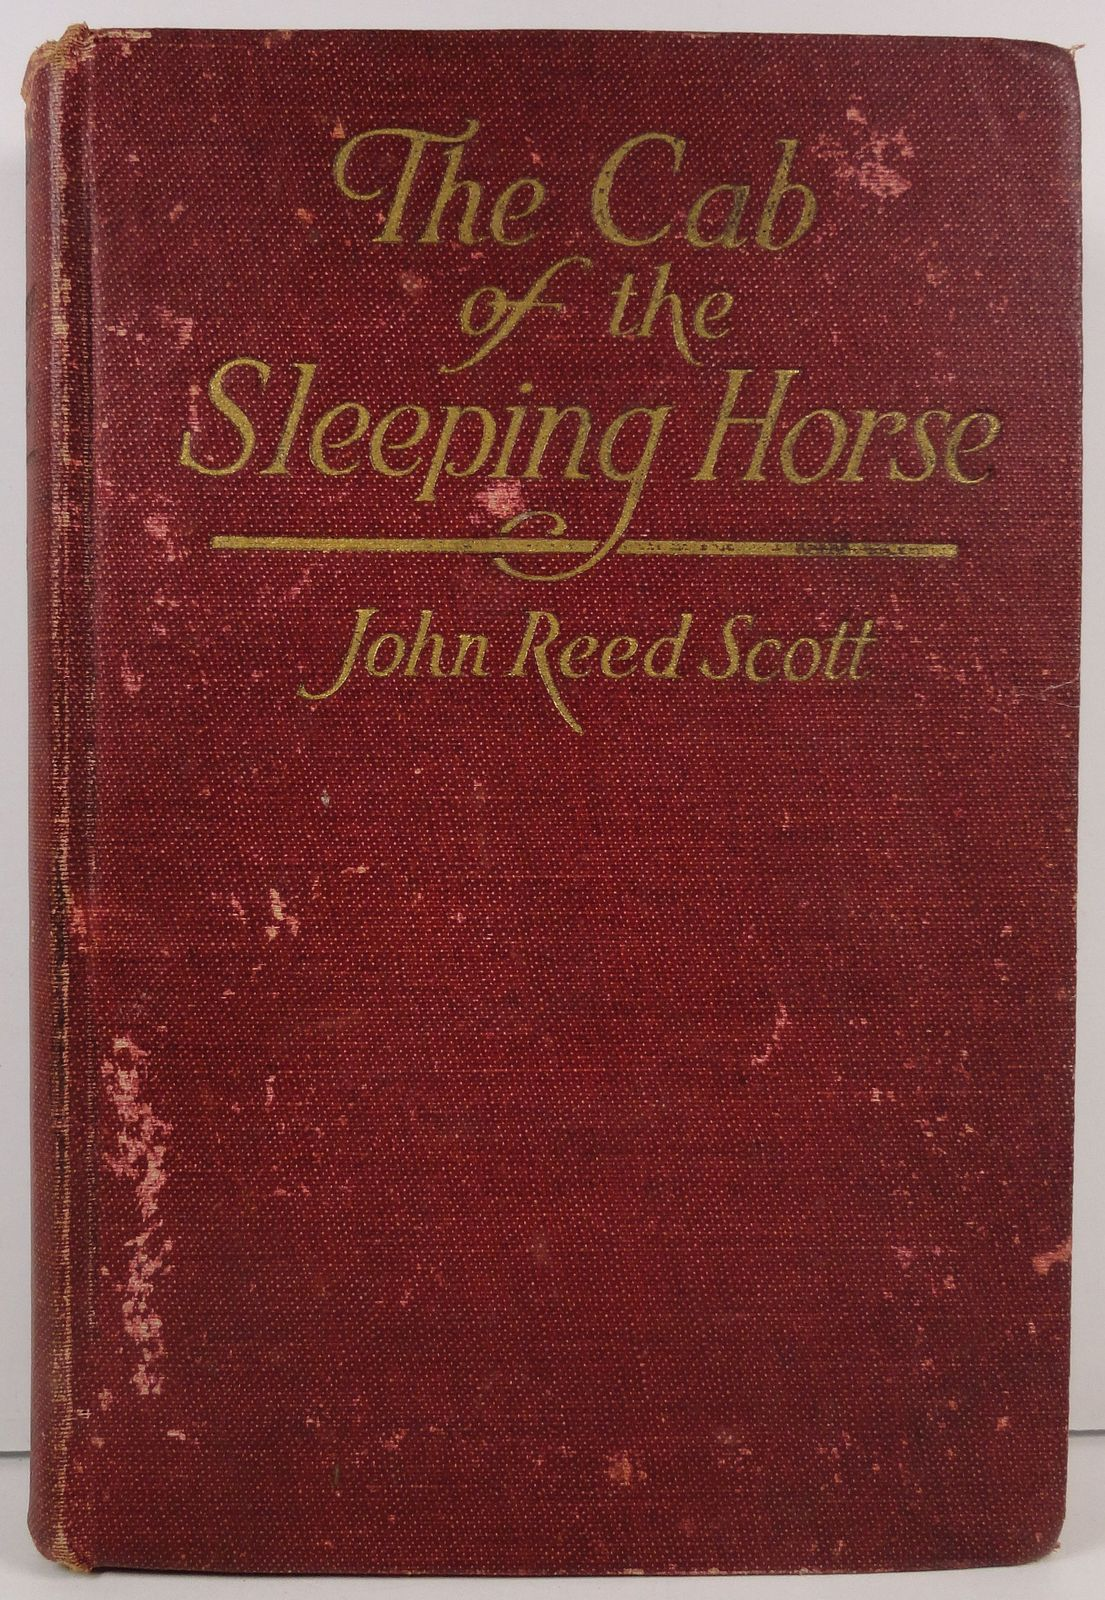 The Cab of the Sleeping Horse by John Reed Scott A. L. Burt